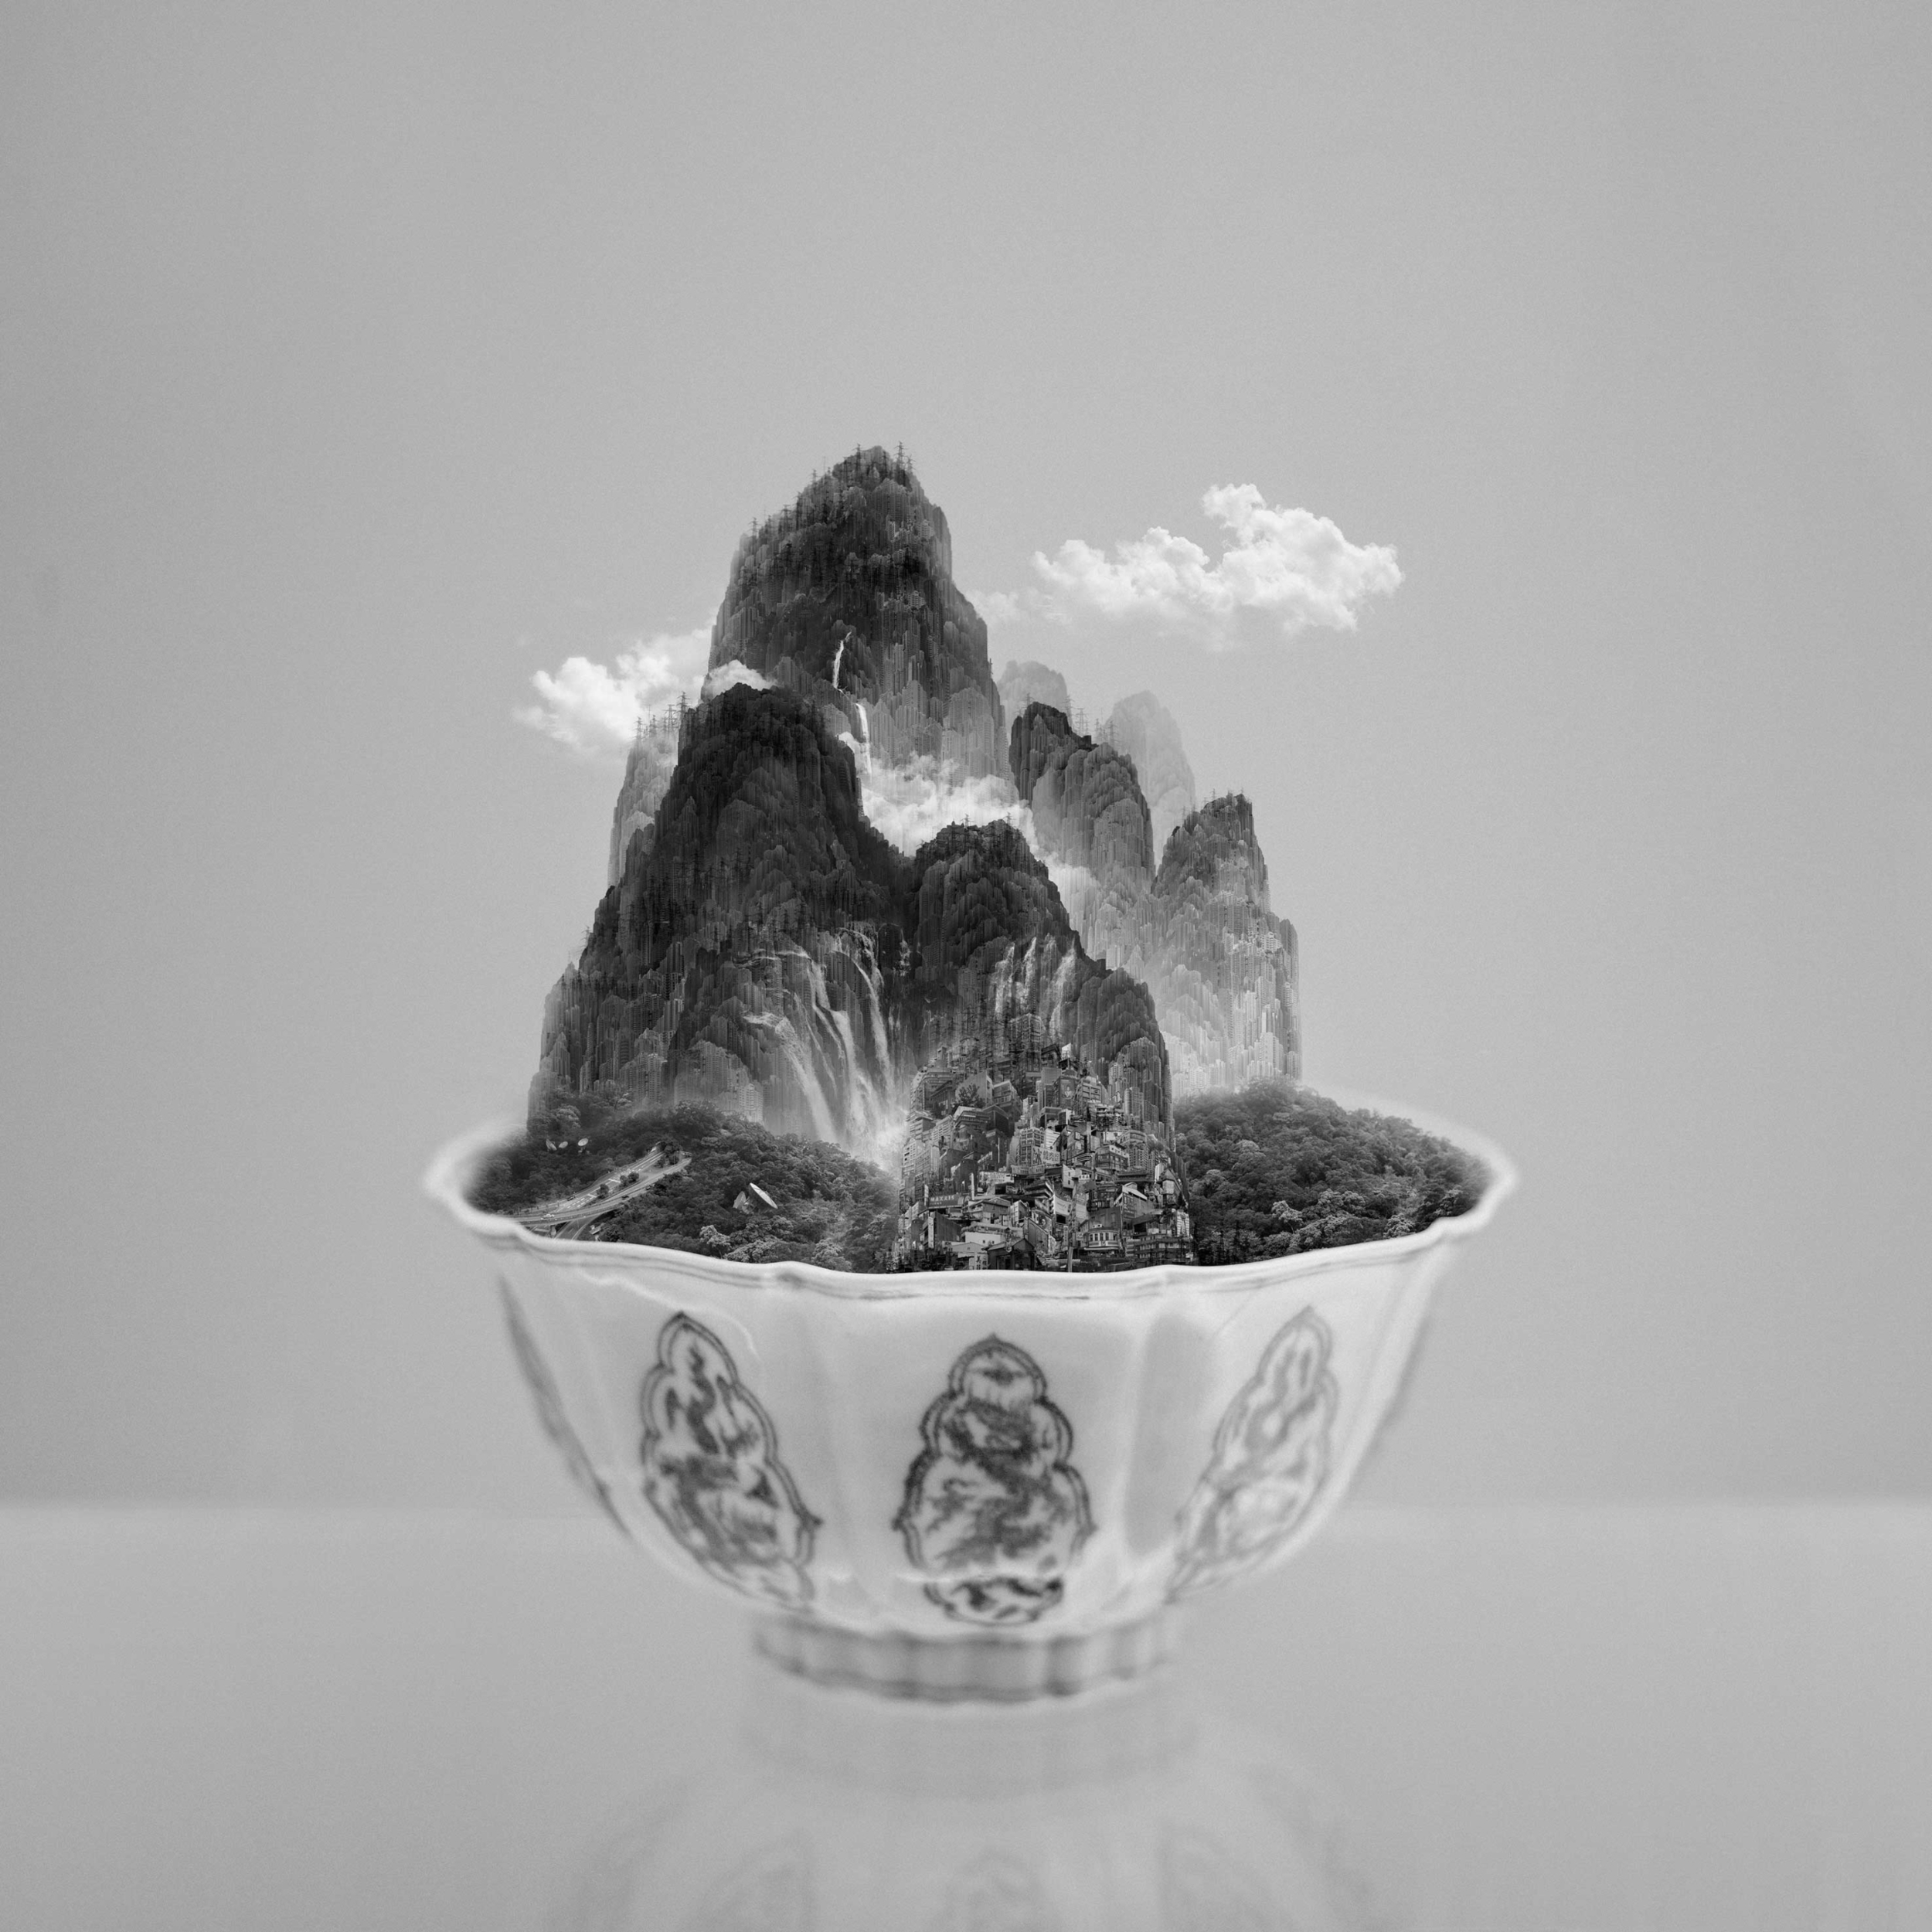 A Bowl of Taipei No.2, 2012, 150 x 150 cm, Epson Ultragiclee print on Hahnemühle Traditional Photo Paper